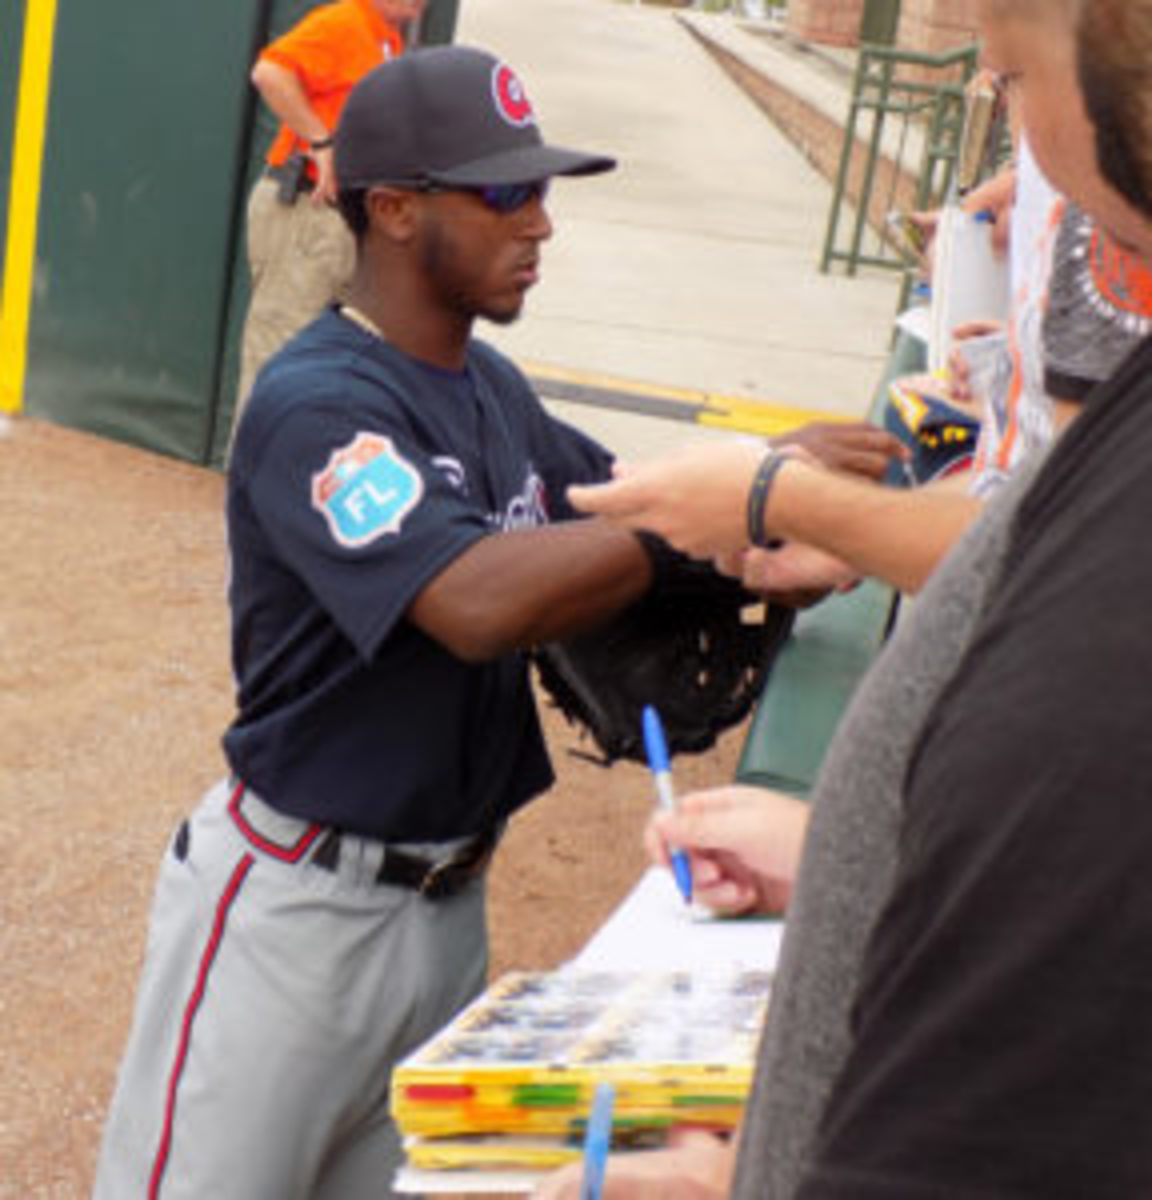 Atlanta Braves second baseman Ozzie Albies signs for fans at spring training.